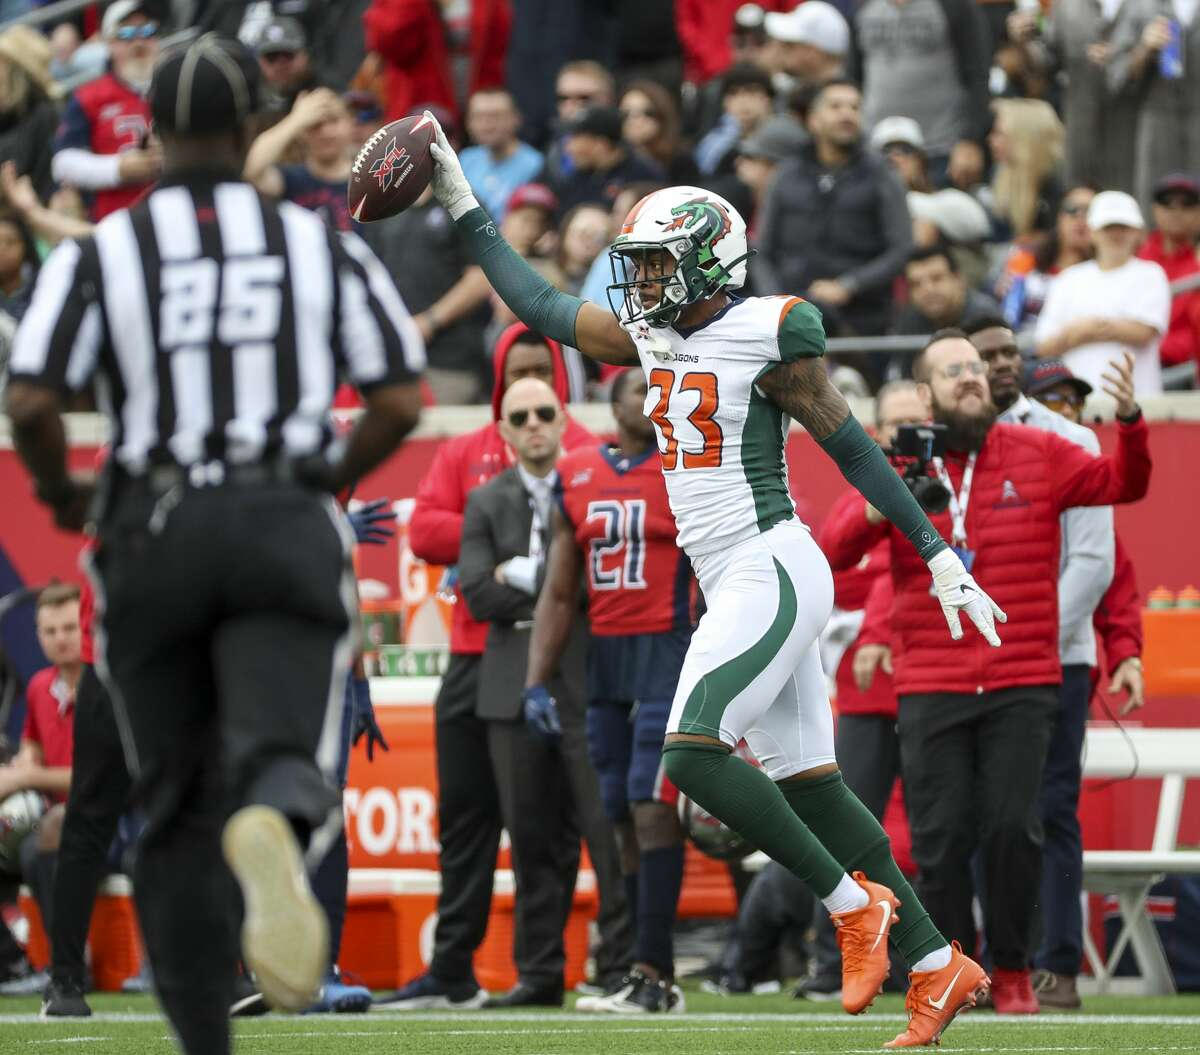 Seattle Dragons safety Jordan Martin (33) celebrates after intercepting a pass intended for Houston Roughnecks wide receiver Sam Mobley (3) during the third quarter of an XFL game on Saturday, March 7, 2020, at TDECU Stadium in Houston.